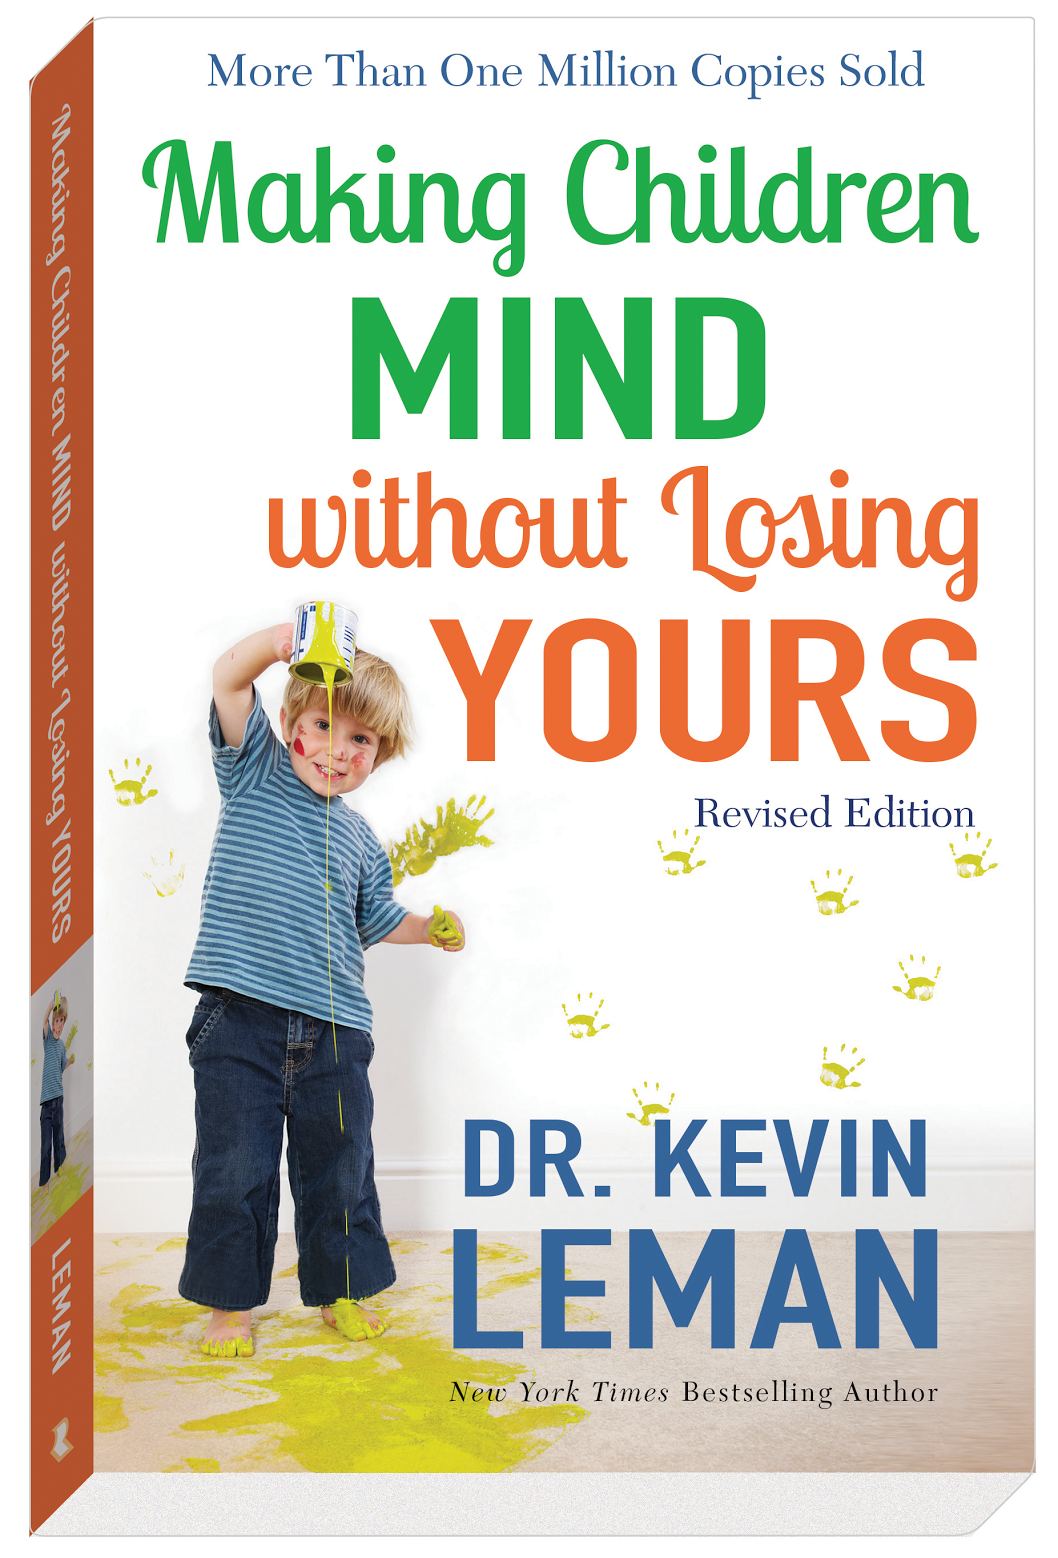 Making Children Mind Without Losing Yours, Revised, Leman